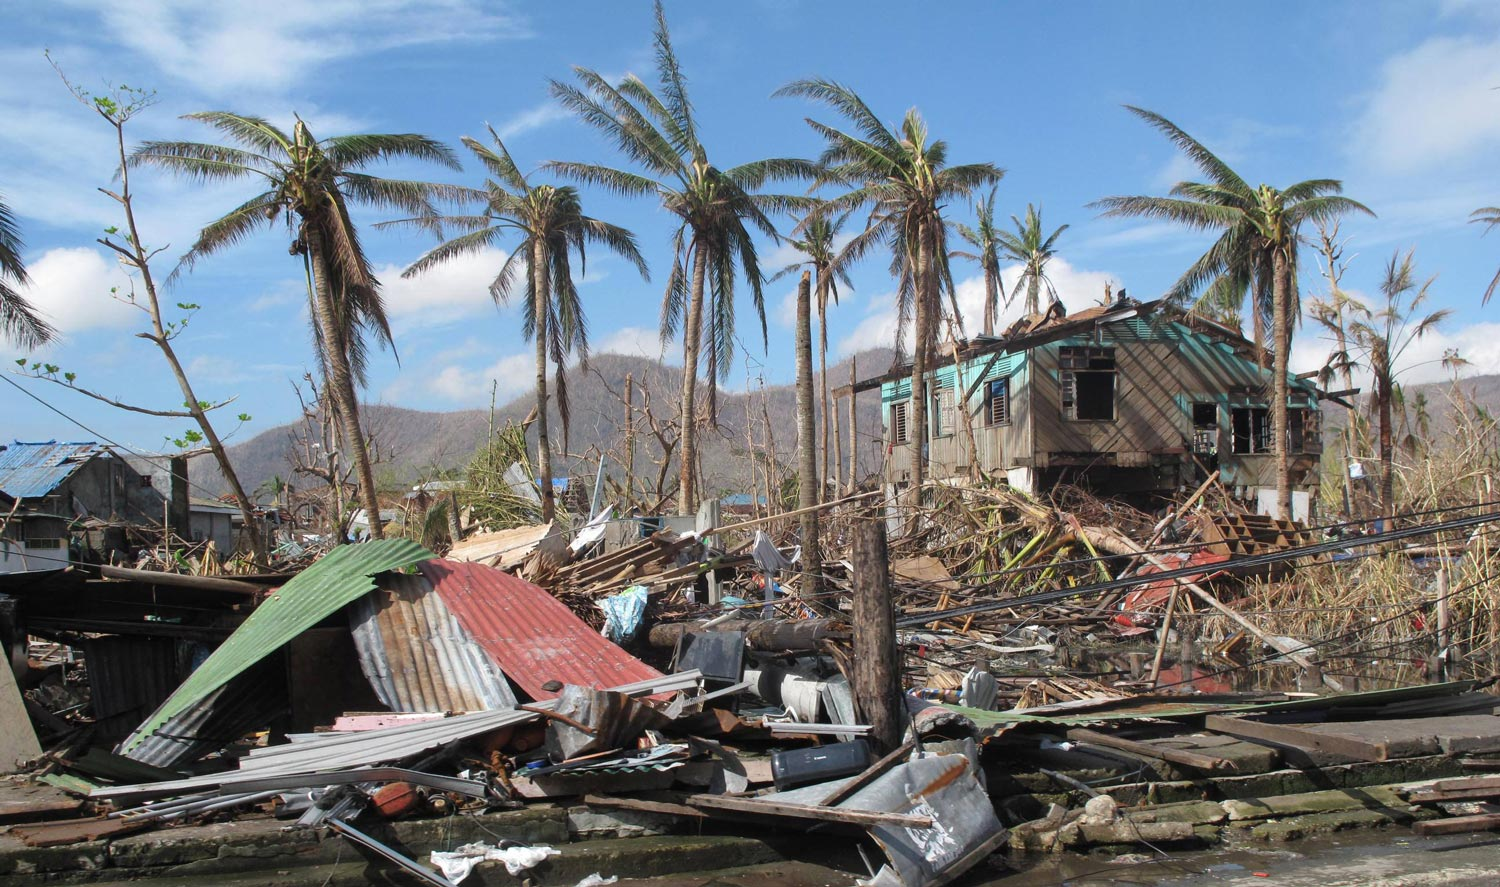 Destruction caused by Typhoon Haiyan in Tacloban, Philippines, 2013 (Photo by Henri Donati/Department for International Development, UK)